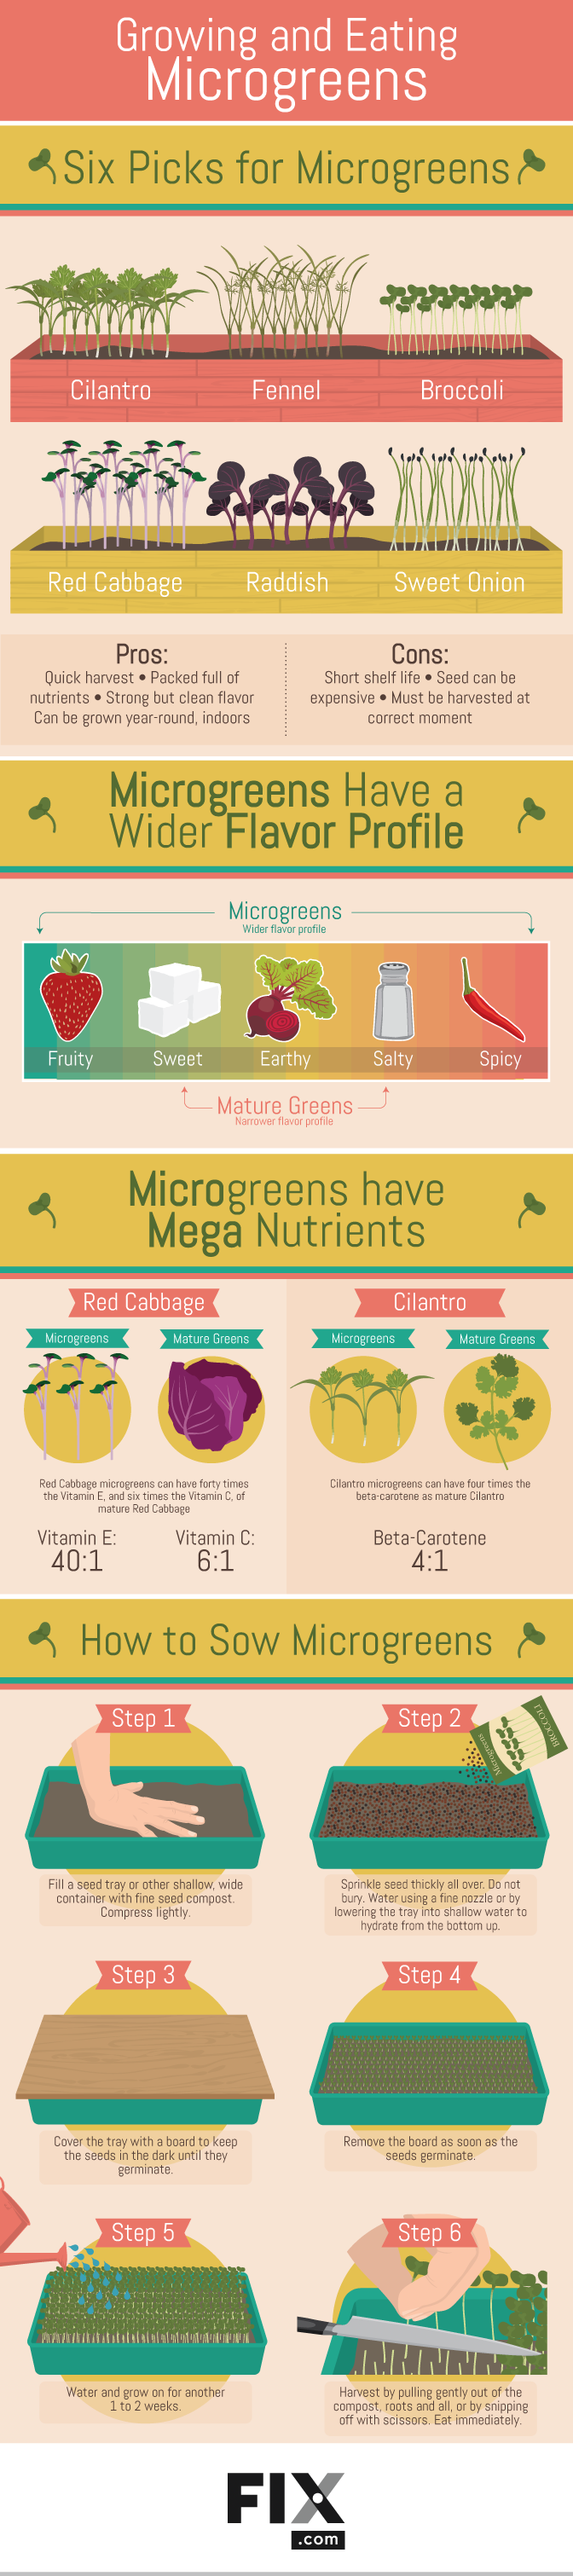 Growing and Eating Microgreens #infographic